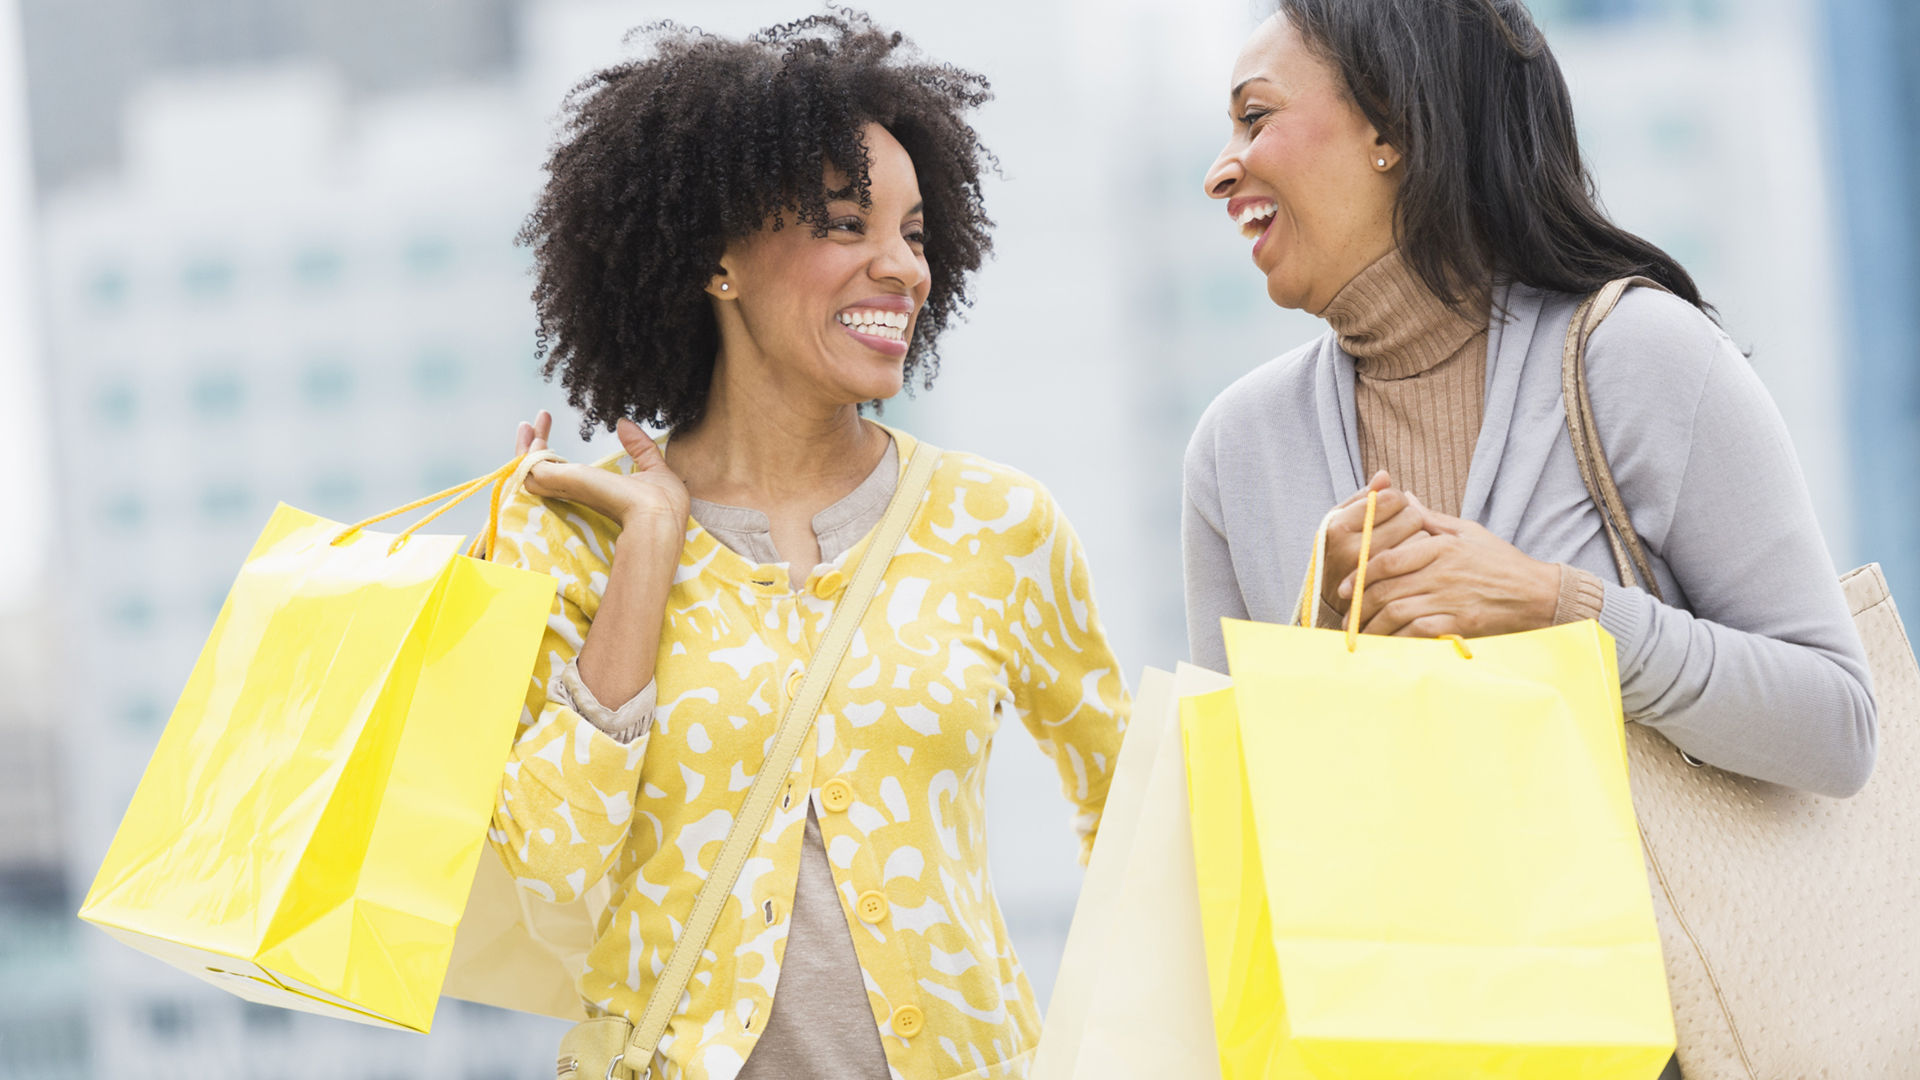 Happy women with yellow shopping bags | Sheknows.com